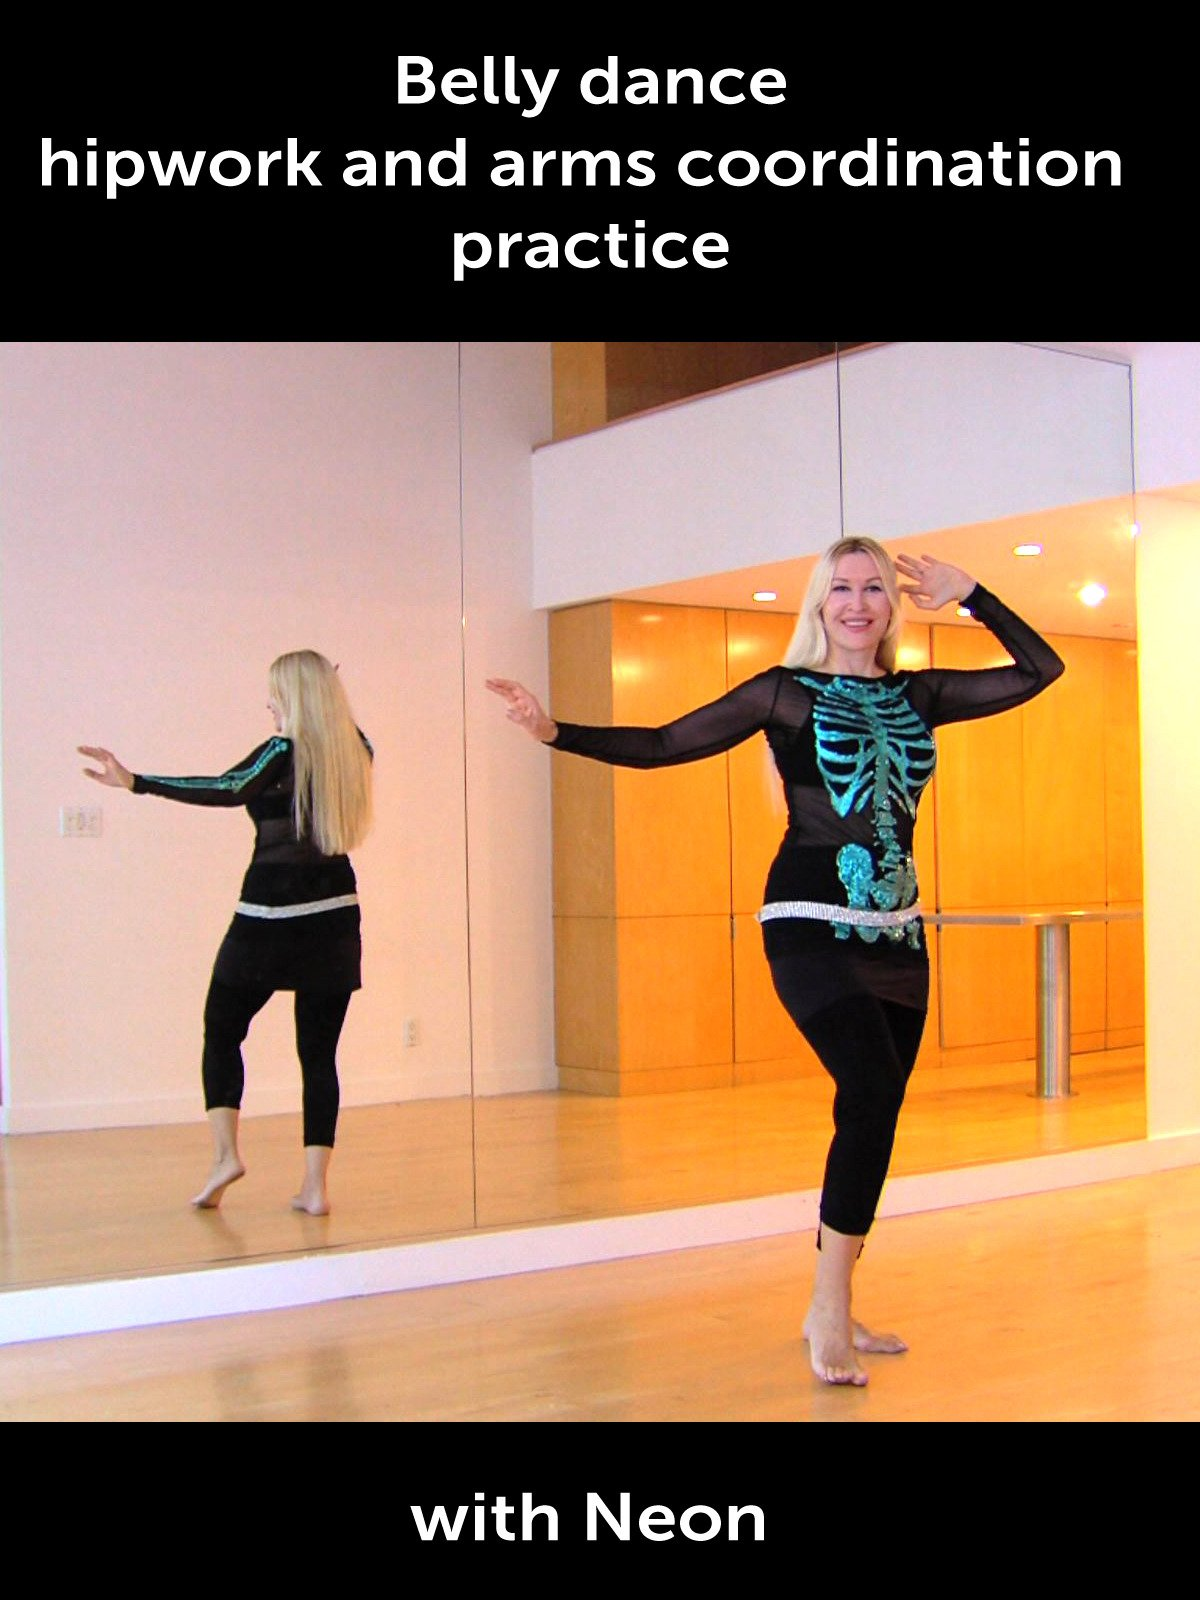 Belly dance hipwork and arms coordination practice with Neon